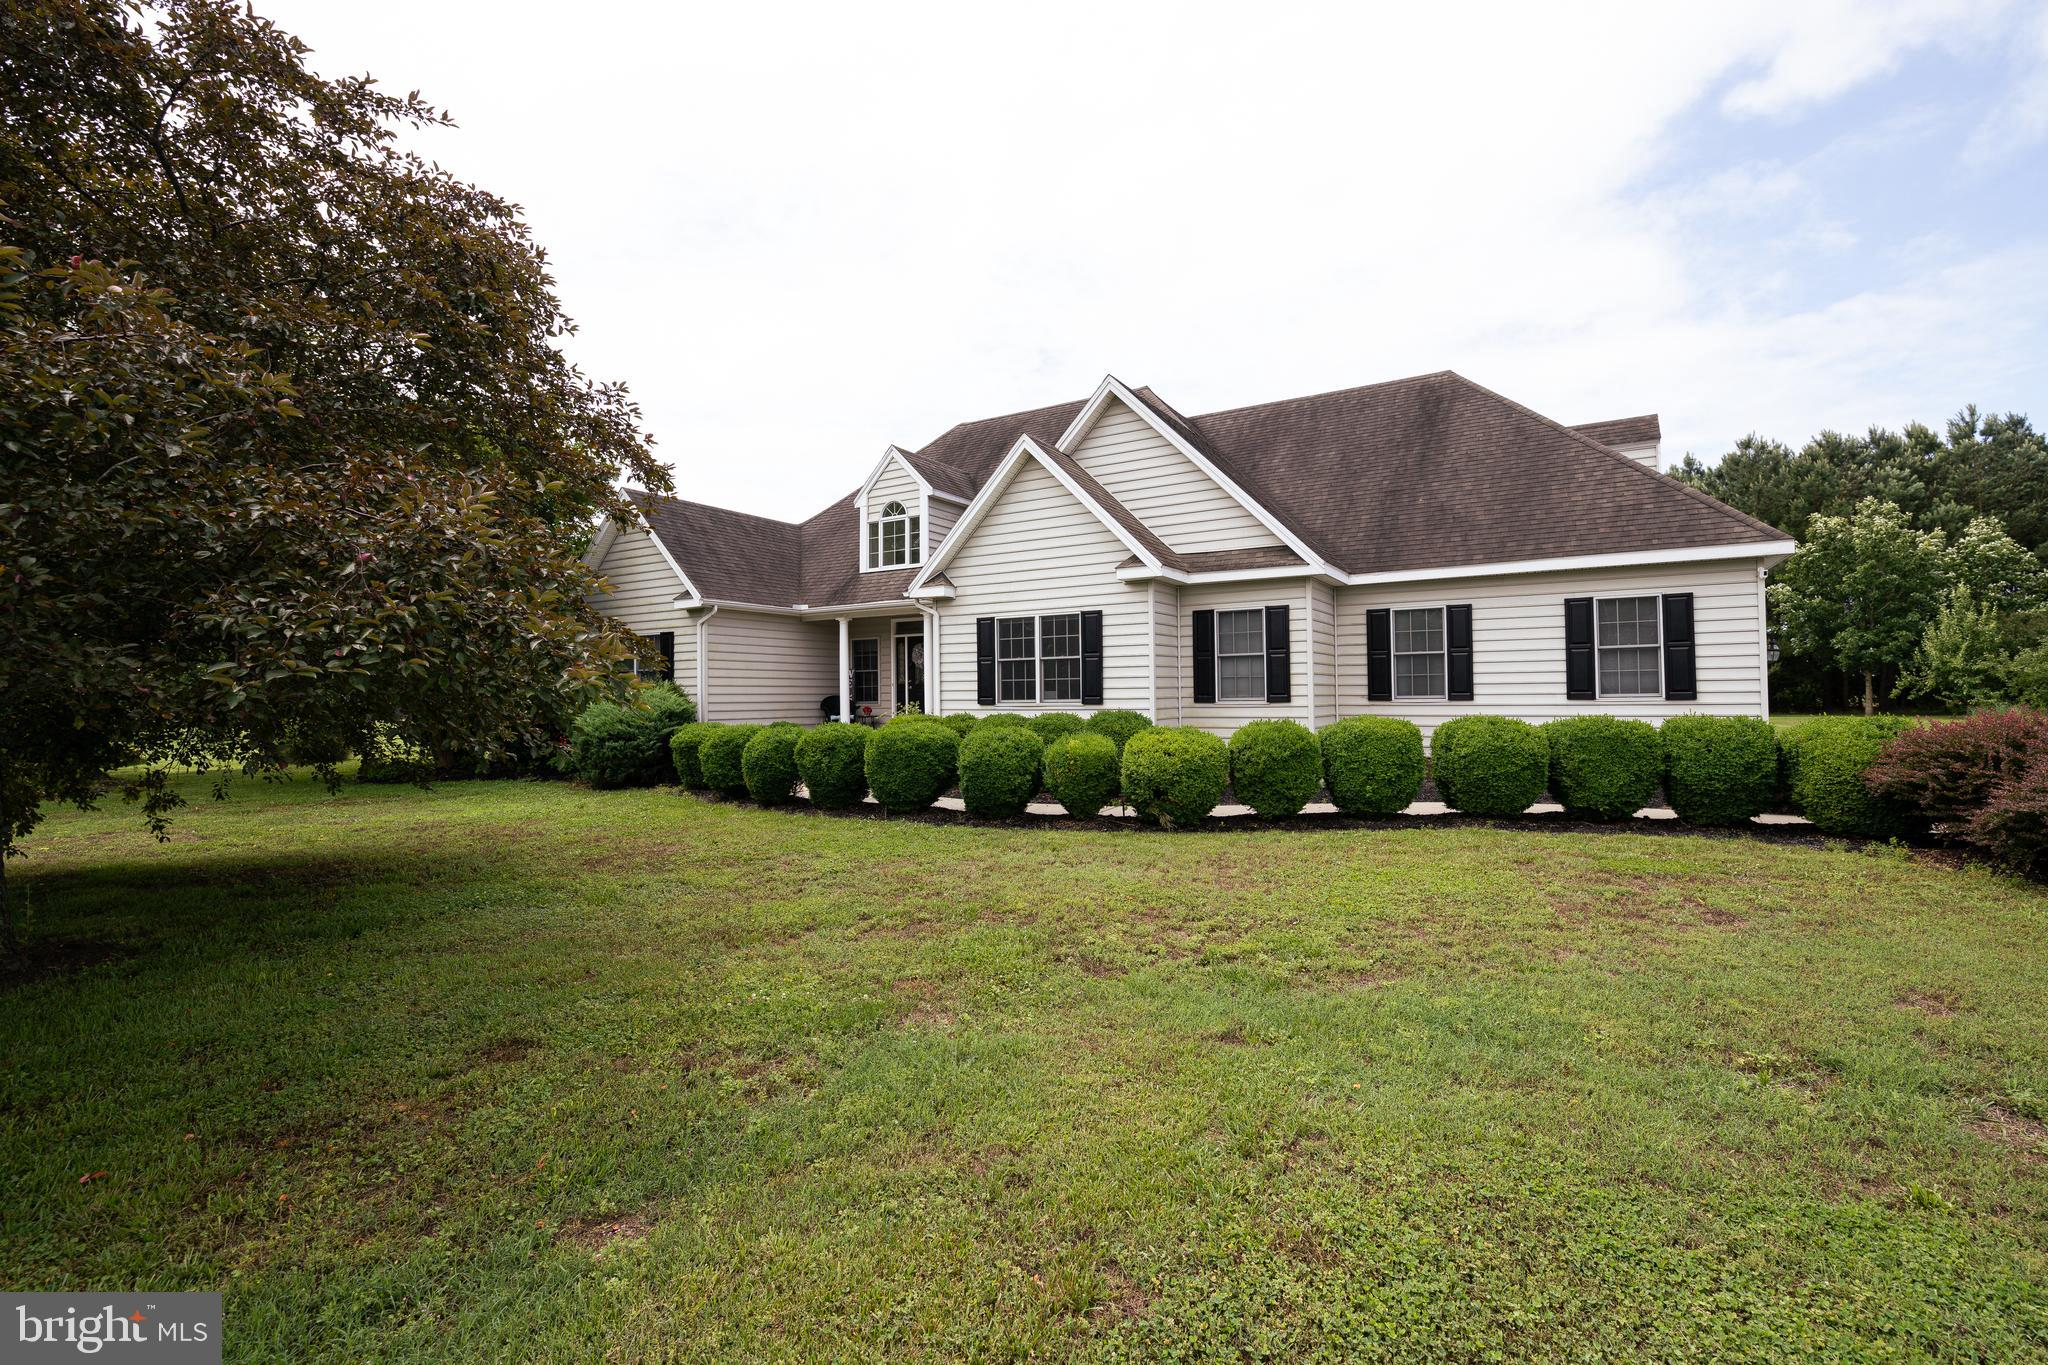 This home has everything you could want! Relax in the sunroom overlooking the private rear yard and